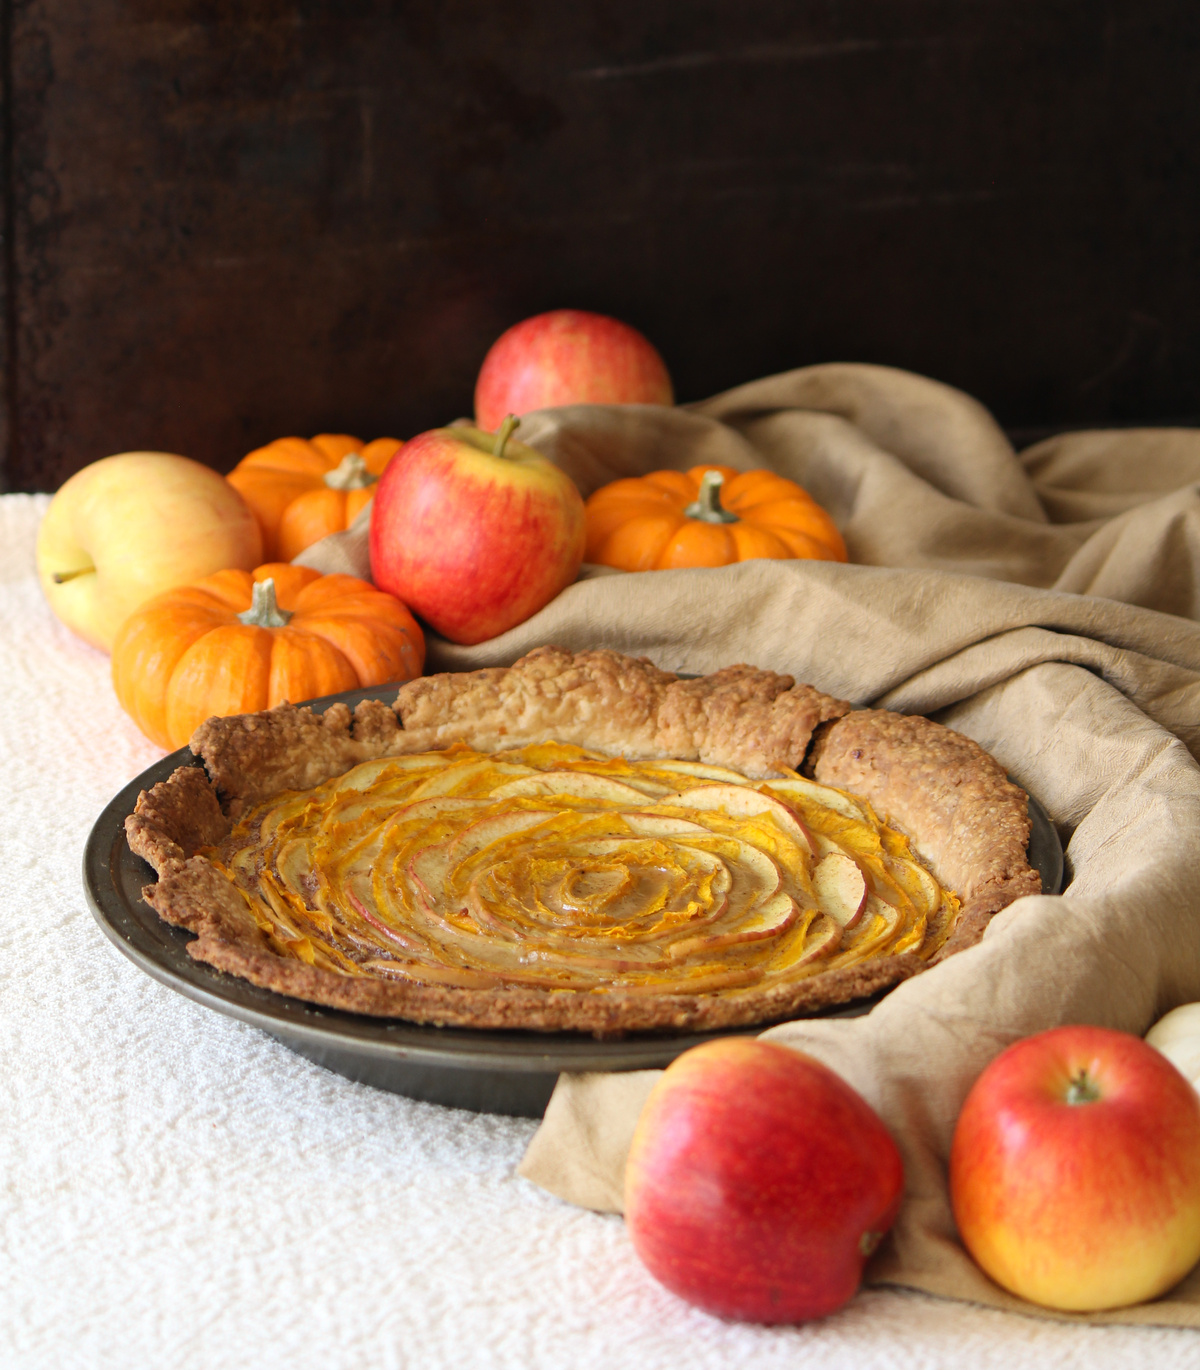 This beautiful pumpkin spice pie is made from thinly sliced pumpkin and apple - Inspired by Robin Hobb's Fool's Assassin